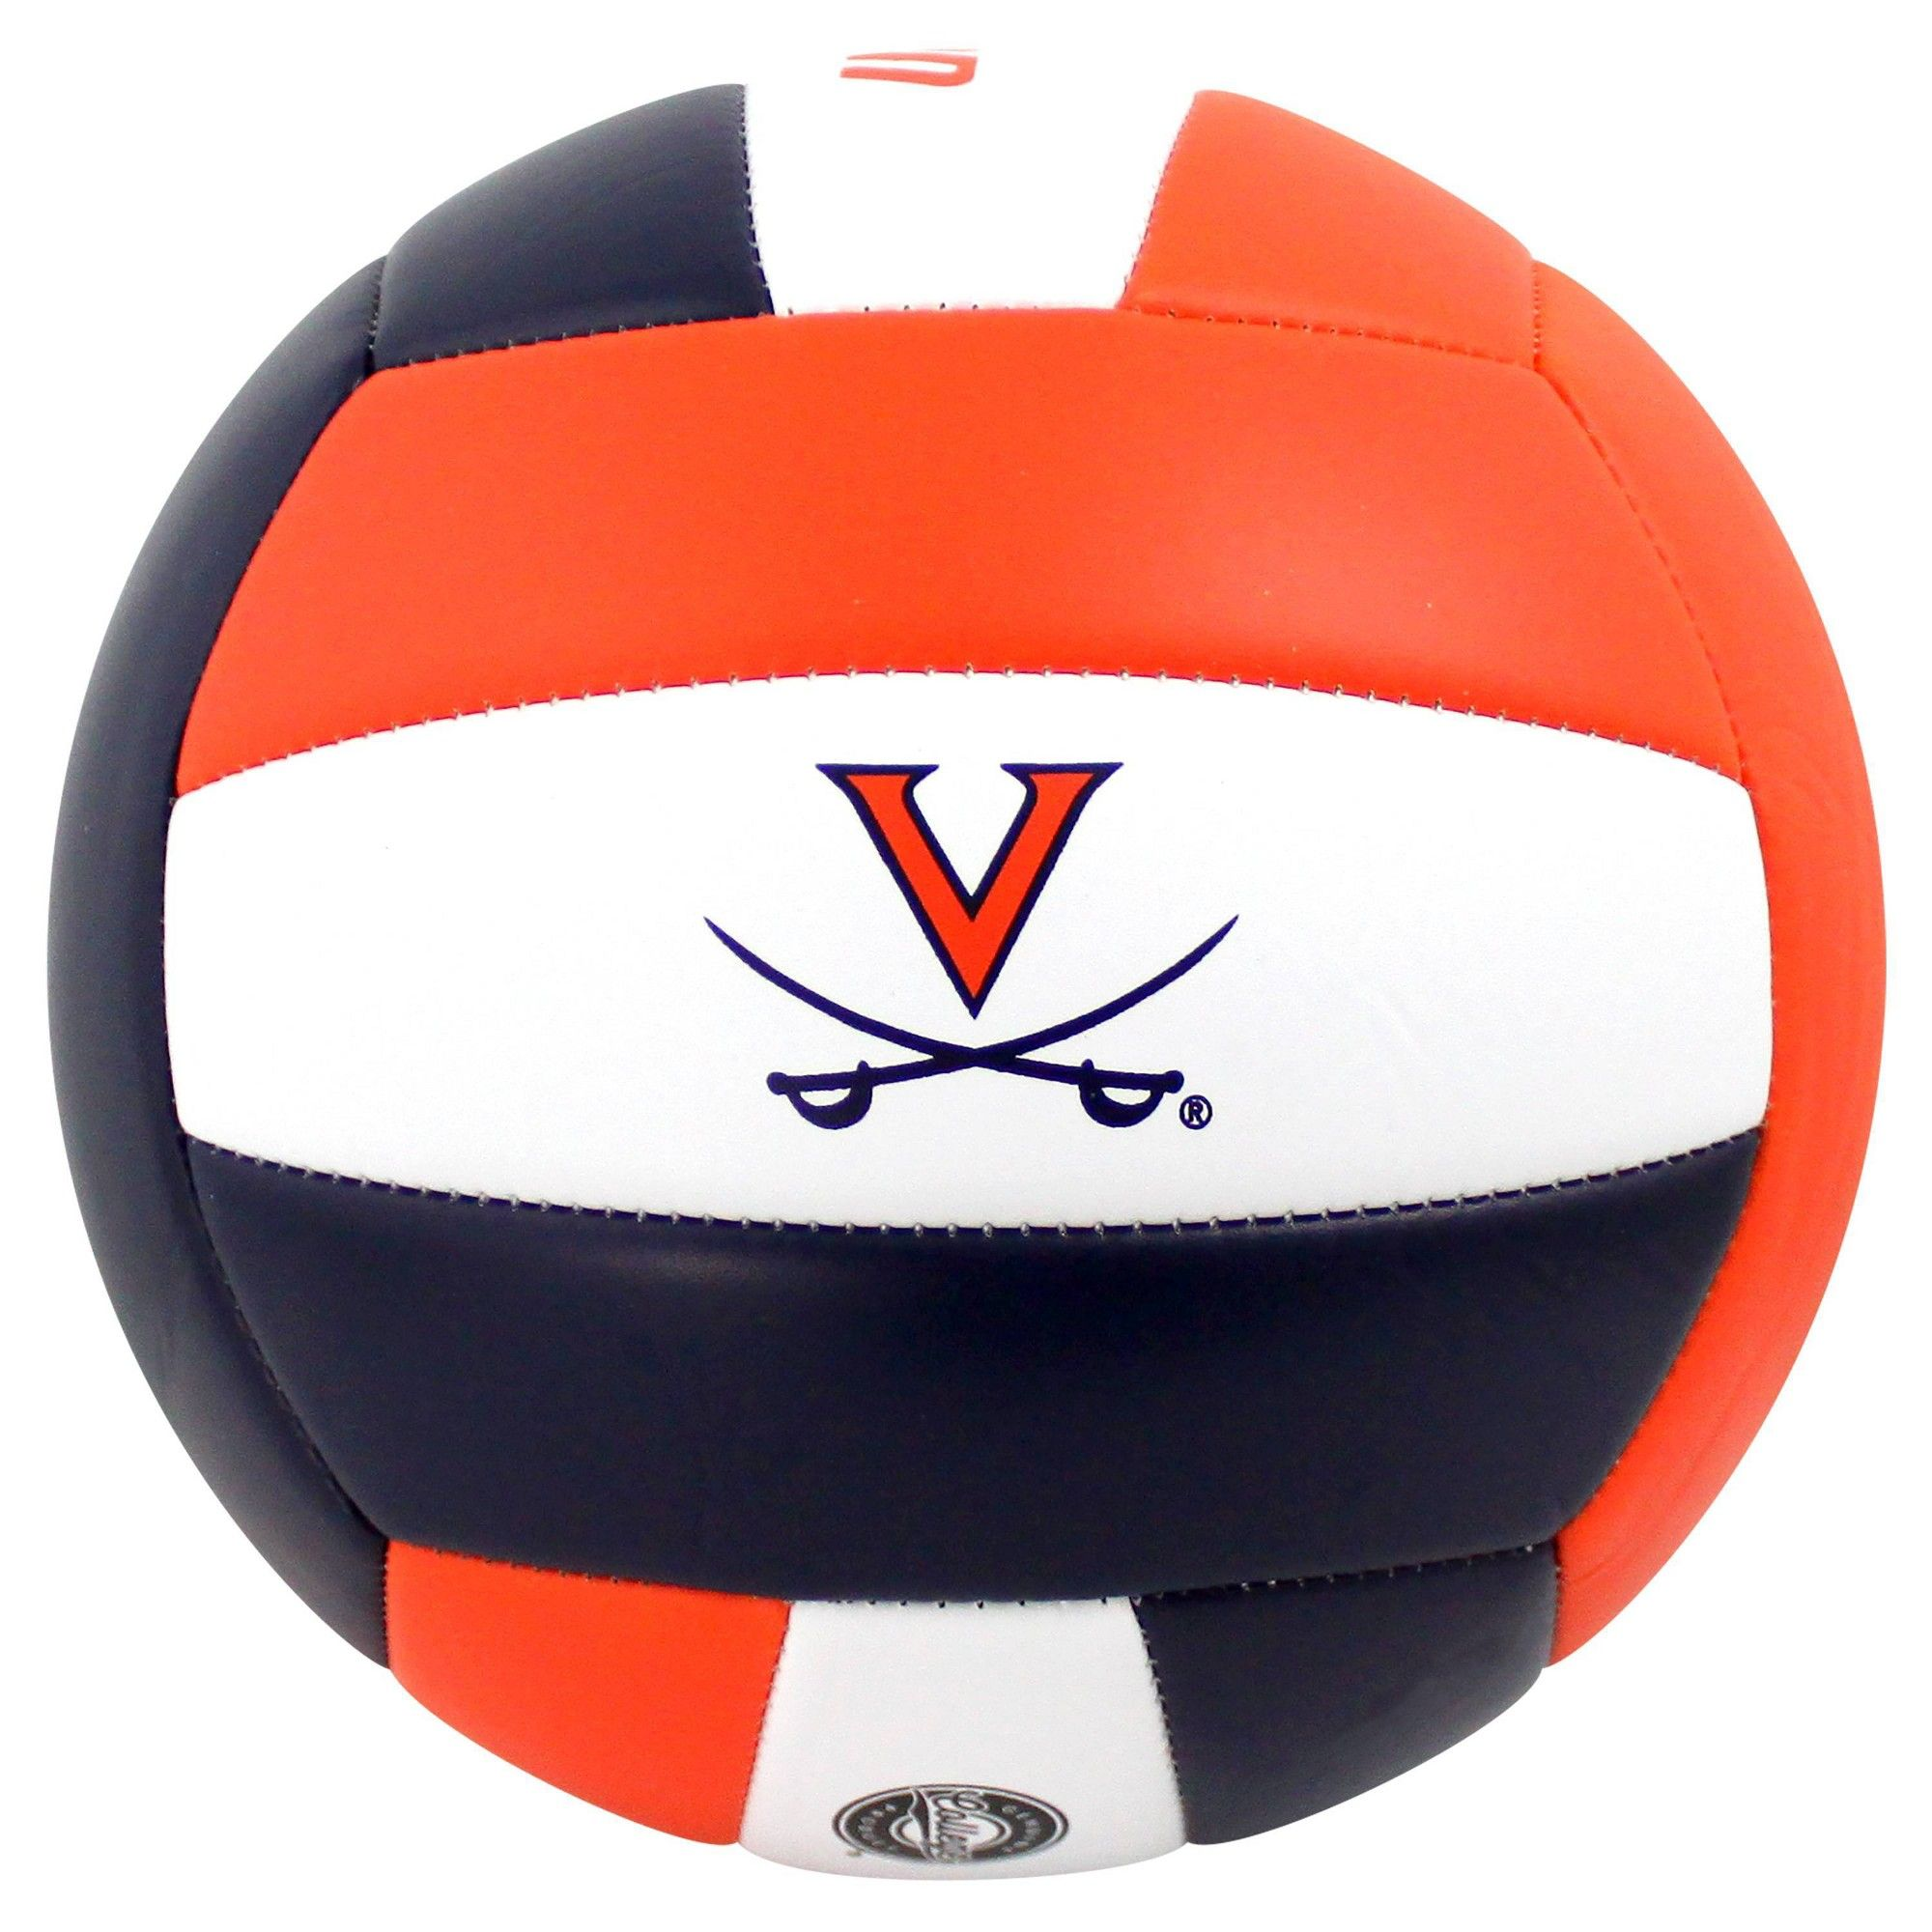 Virginia Cavaliers Vintage Volleyball In 2020 With Images Mini Footballs Virginia Cavaliers Volleyball Skills